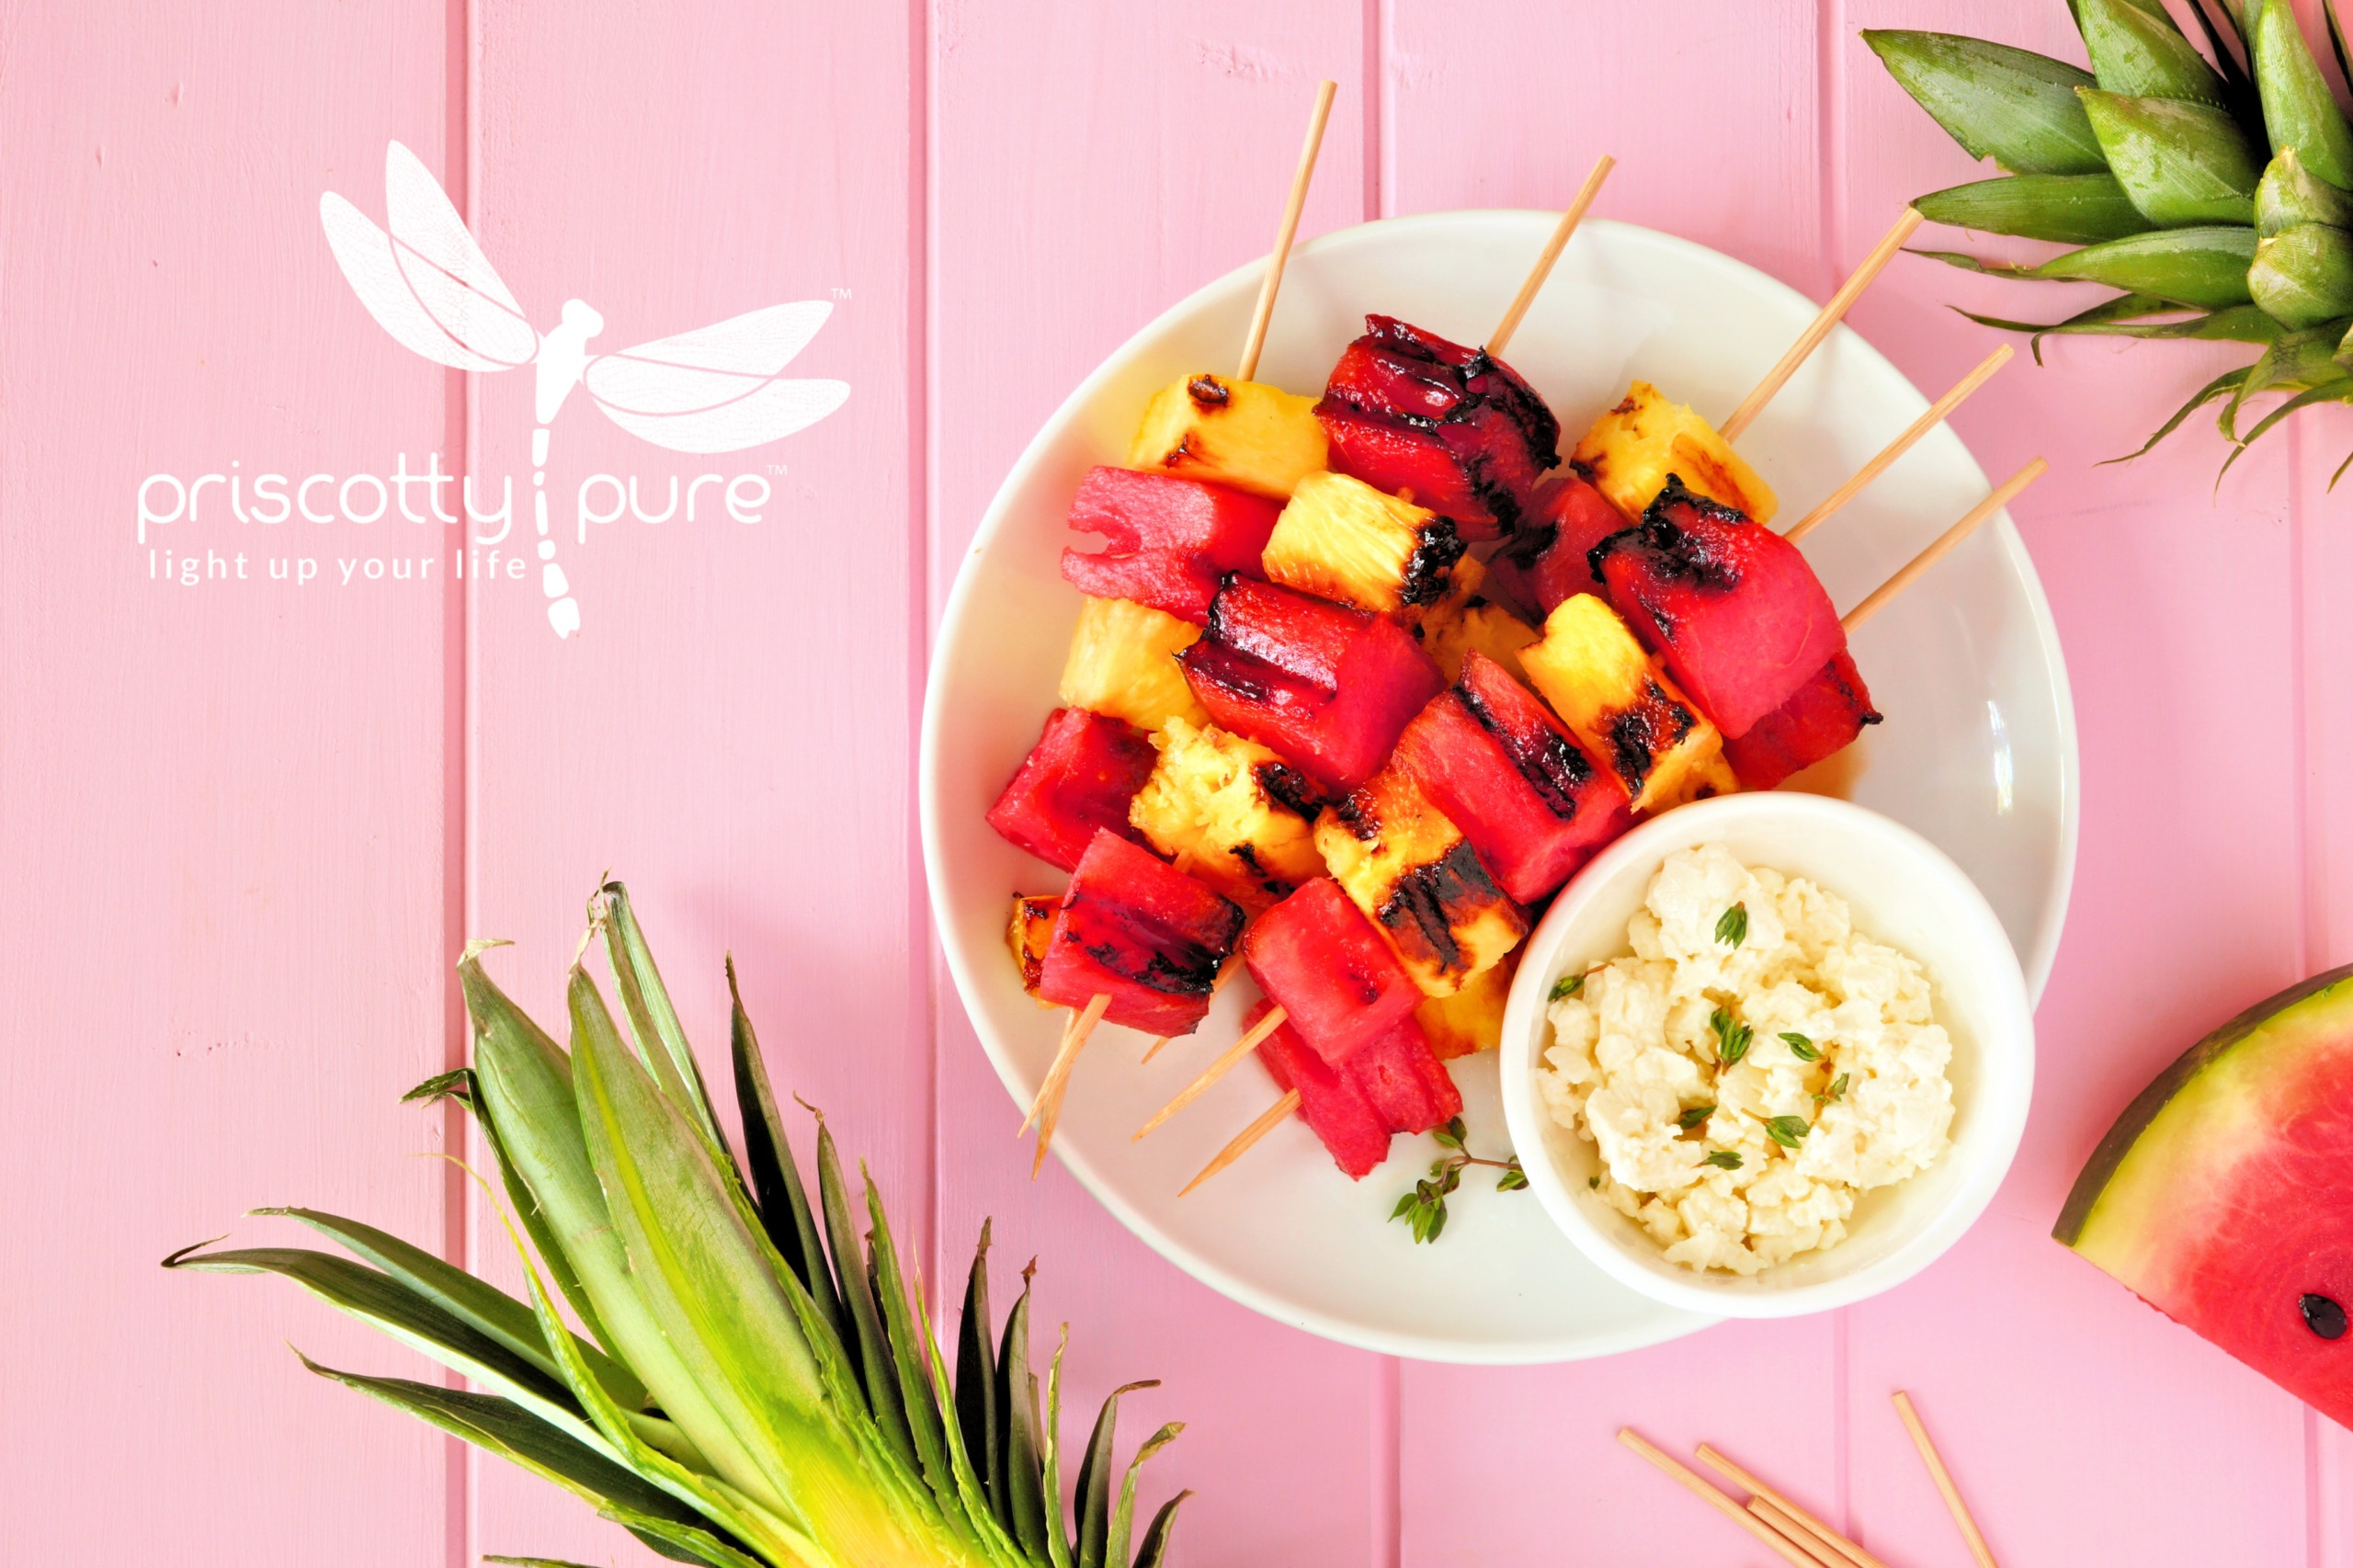 Grilled Watermelon and Pineapple Skewers With Feta Dip Recipe